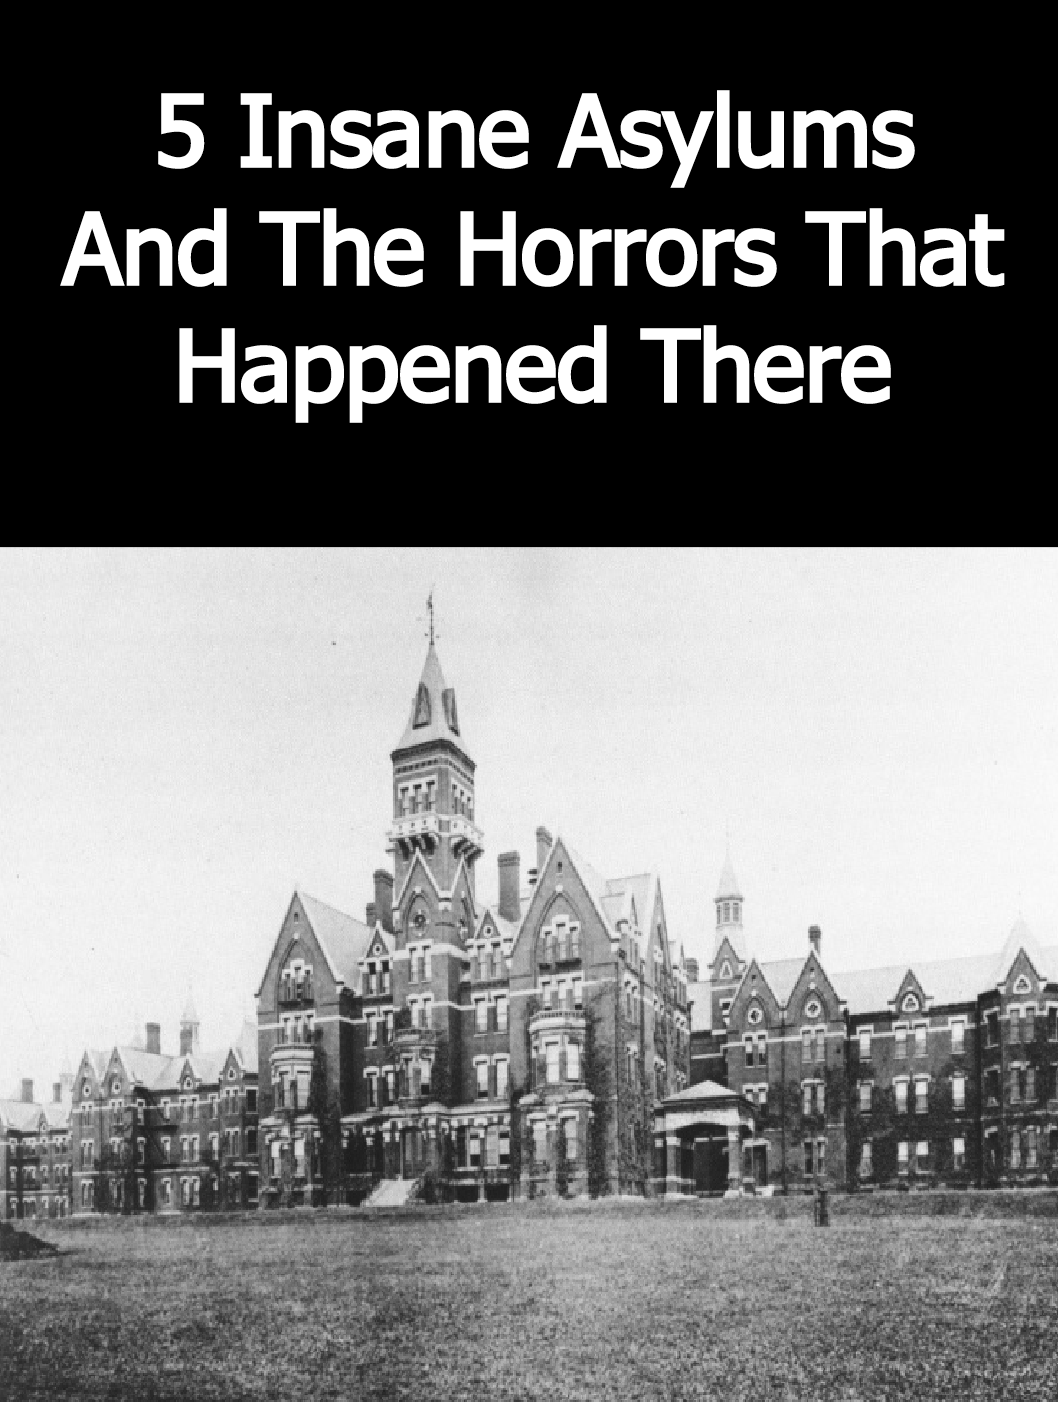 Creepy History 5 Insane Asylums And The Horrors That Happened There